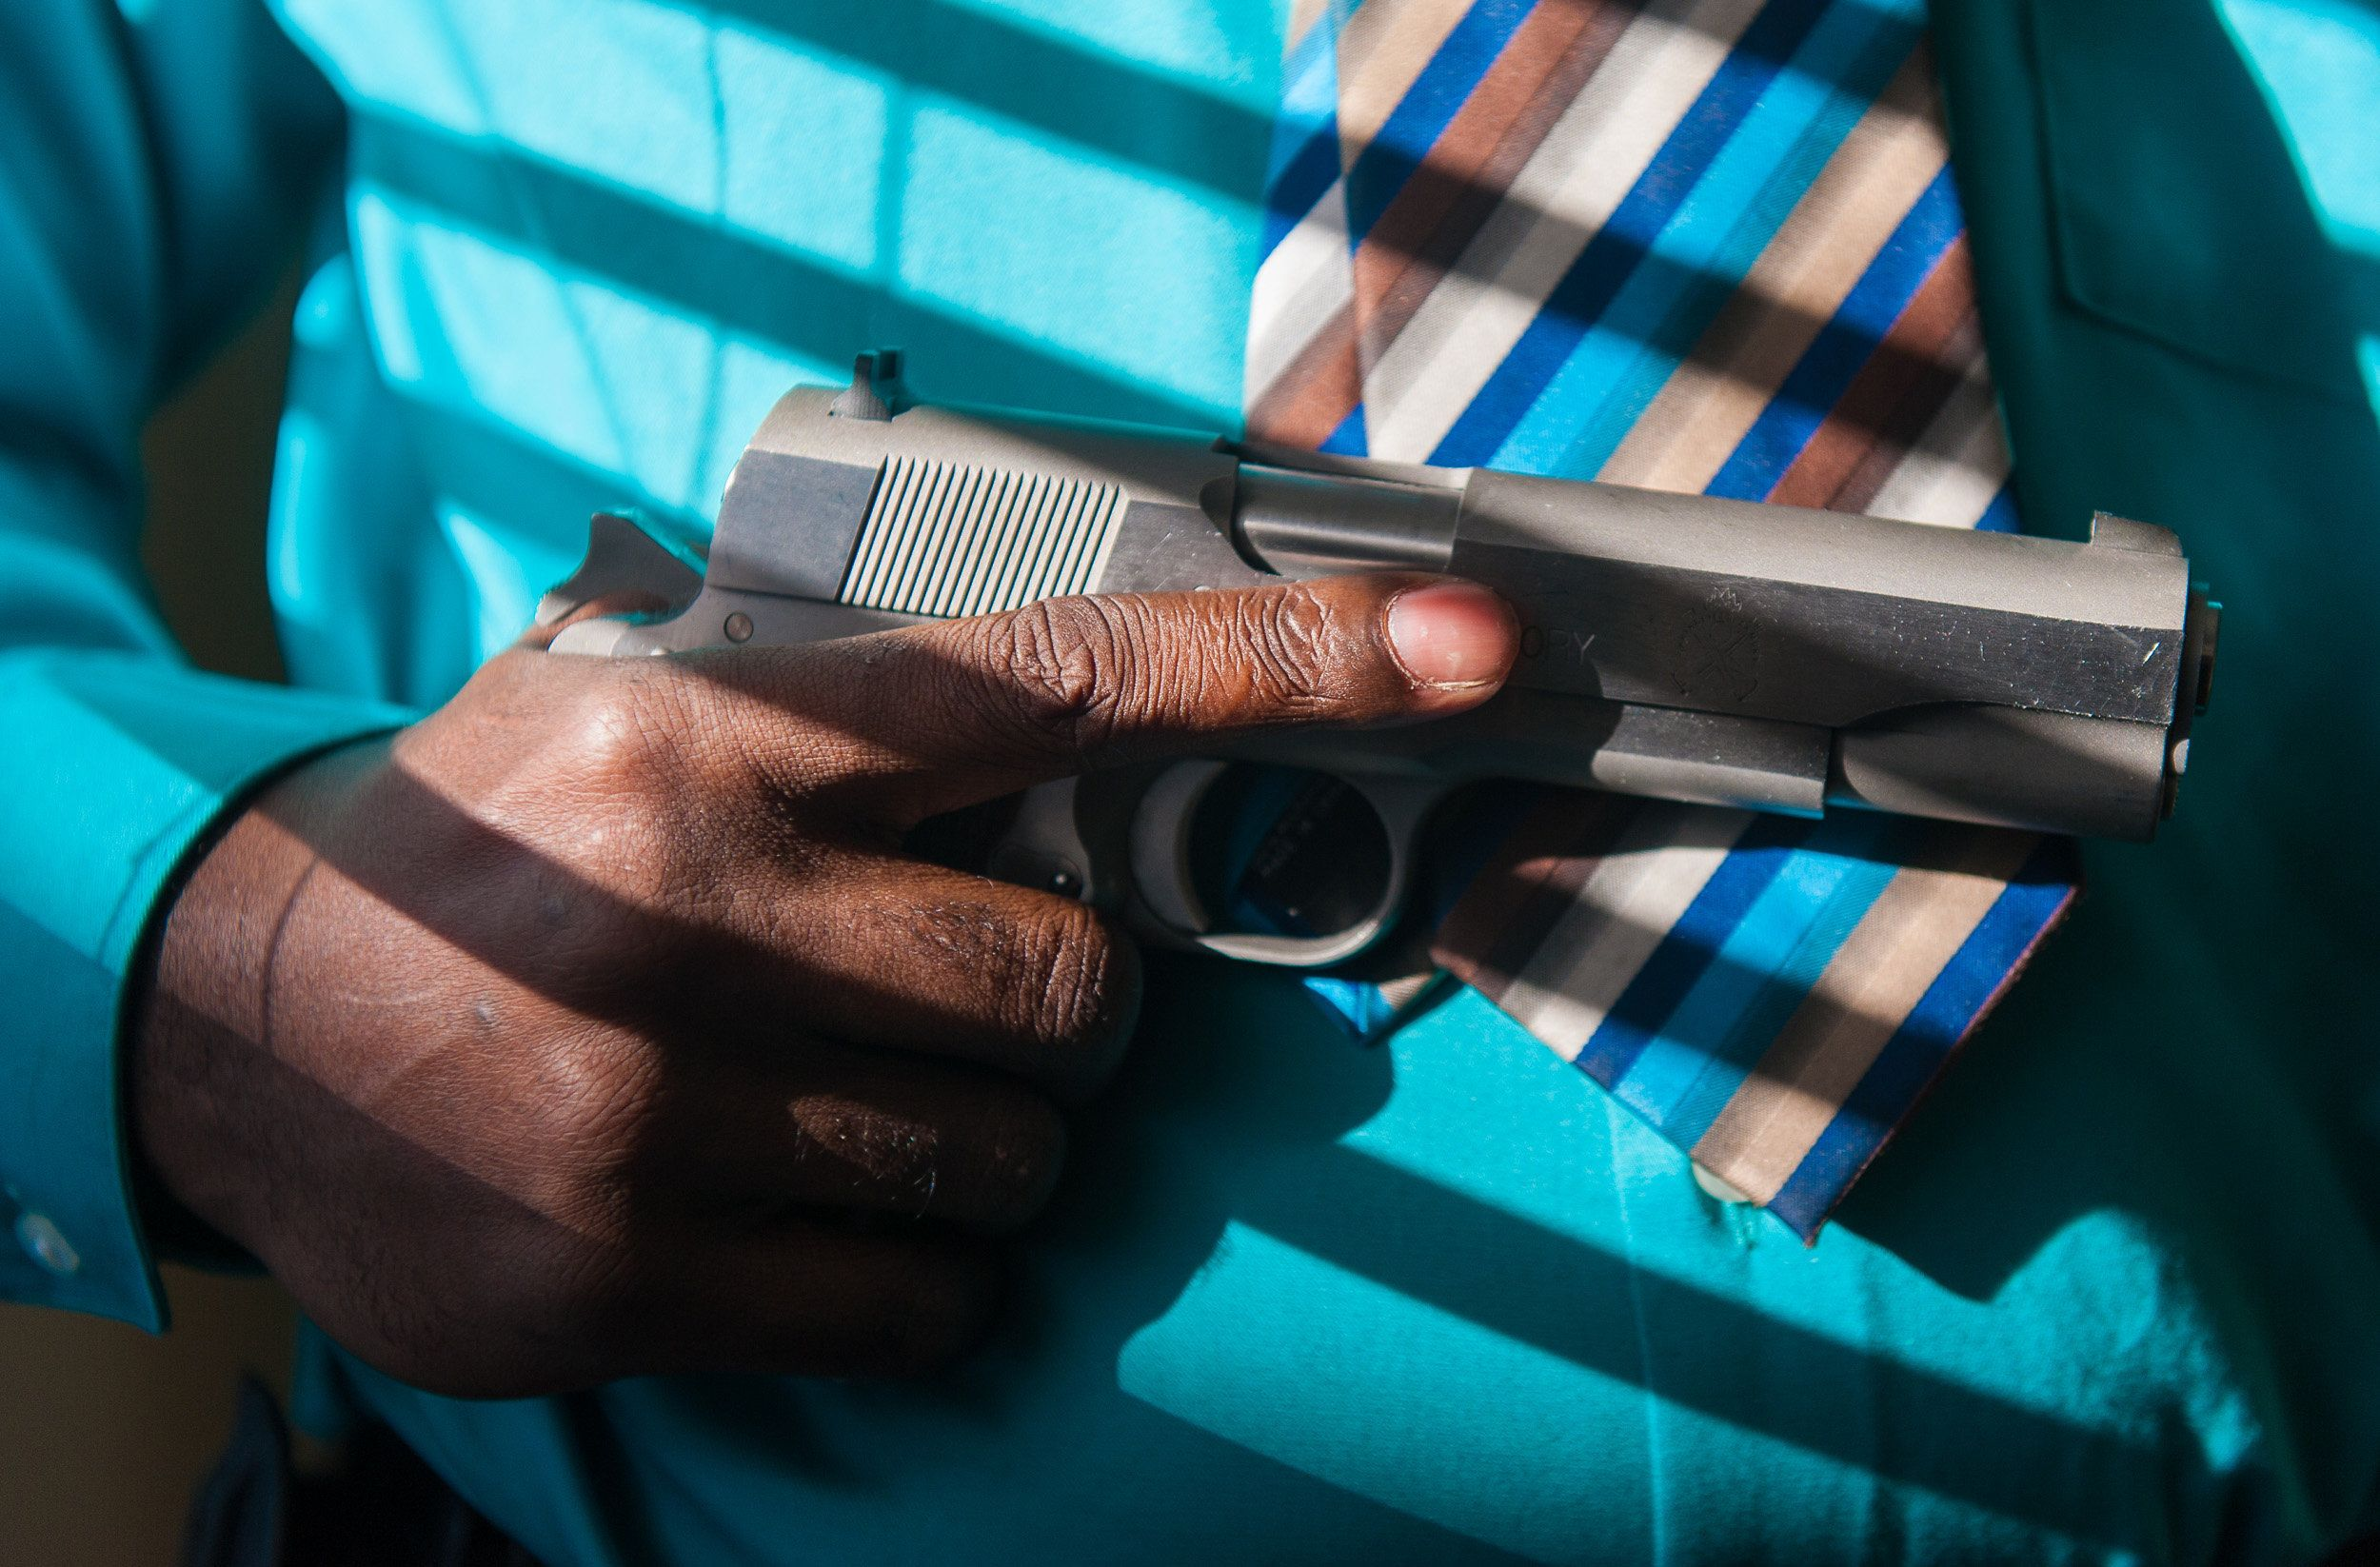 LeFlore, who works as an unarmed security guard, is an avid gun collector.